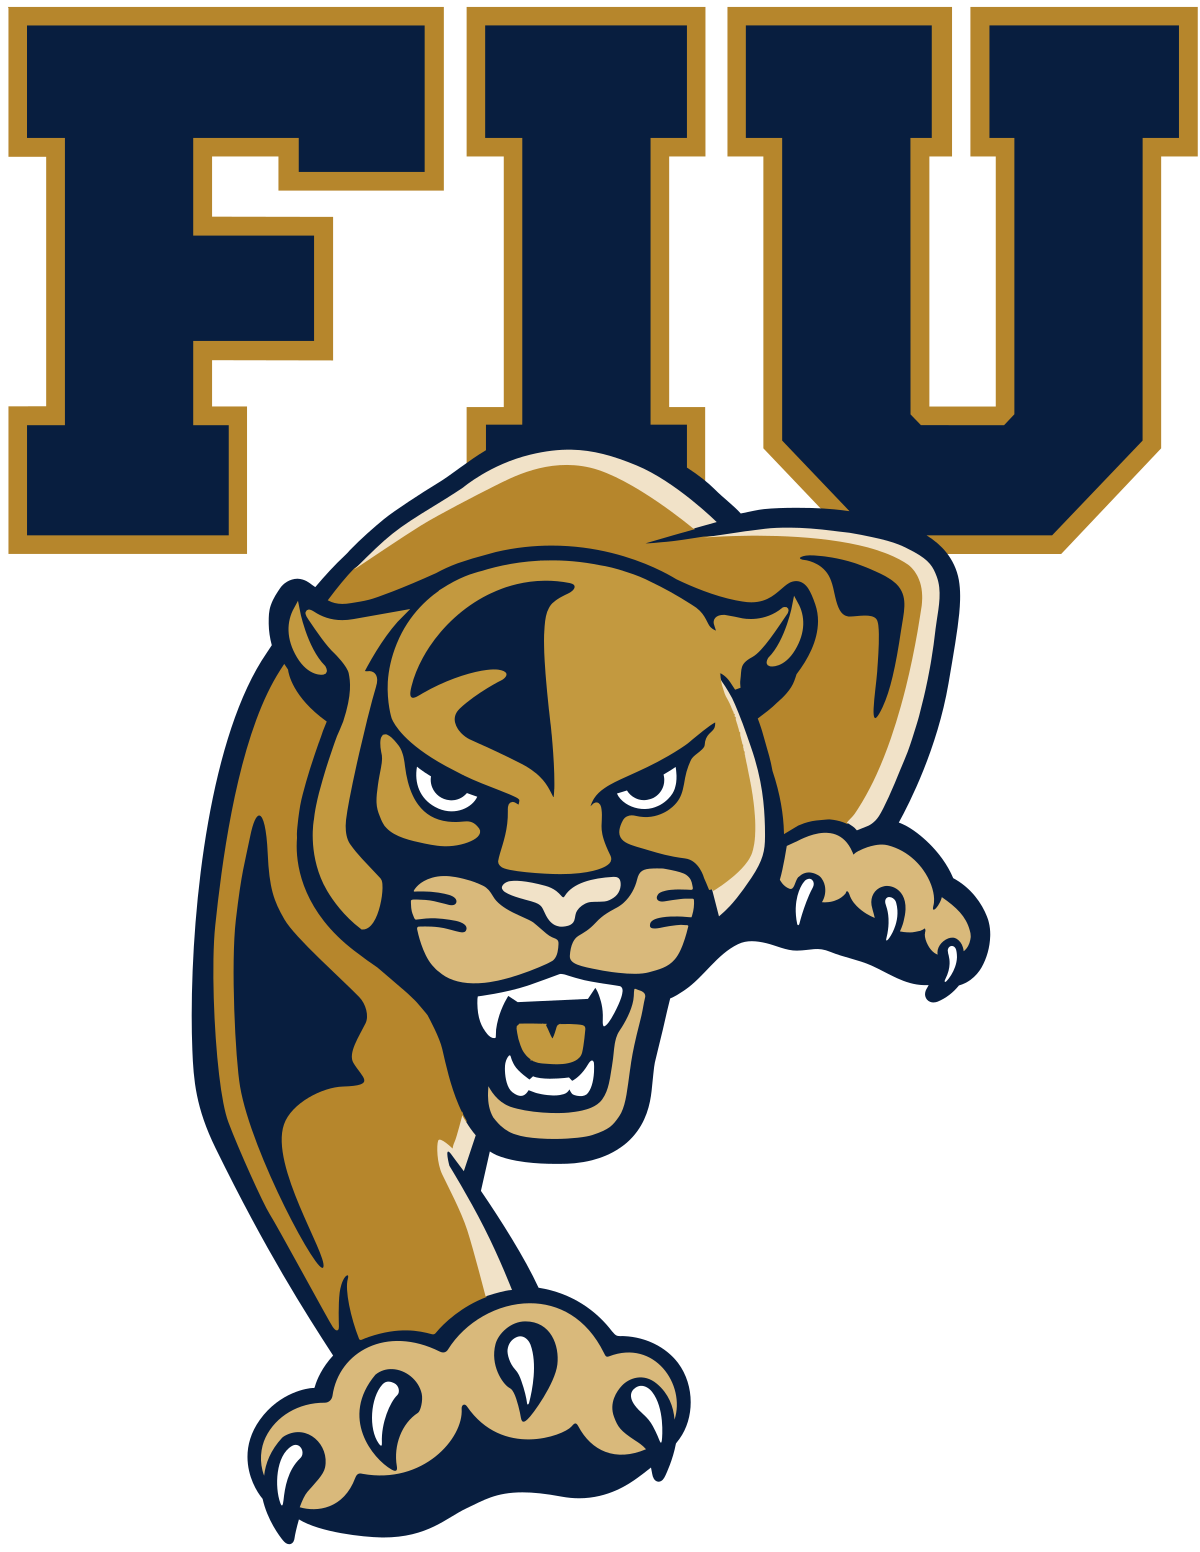 Panthers basketball clipart clip art royalty free FIU Panthers - Wikipedia clip art royalty free